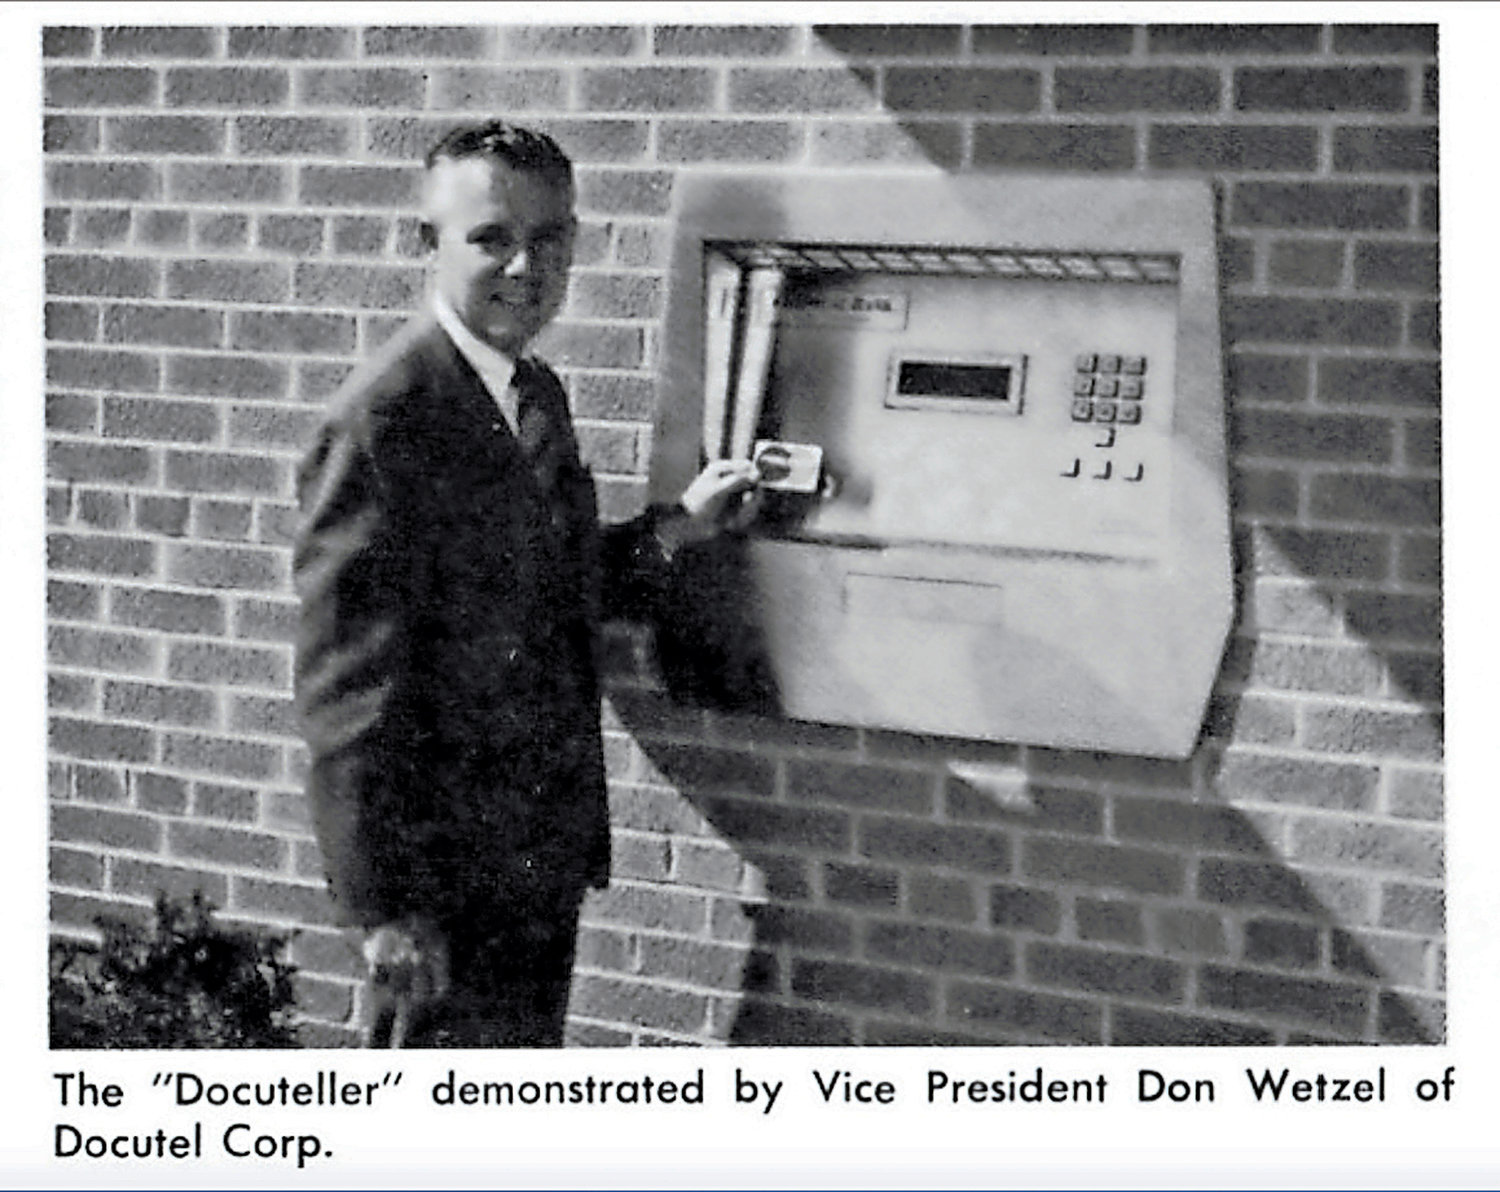 Don Wetzel, inventor of the ATM, left, will be in Rockville Centre for a 50th anniversary celebration on Sept. 6.